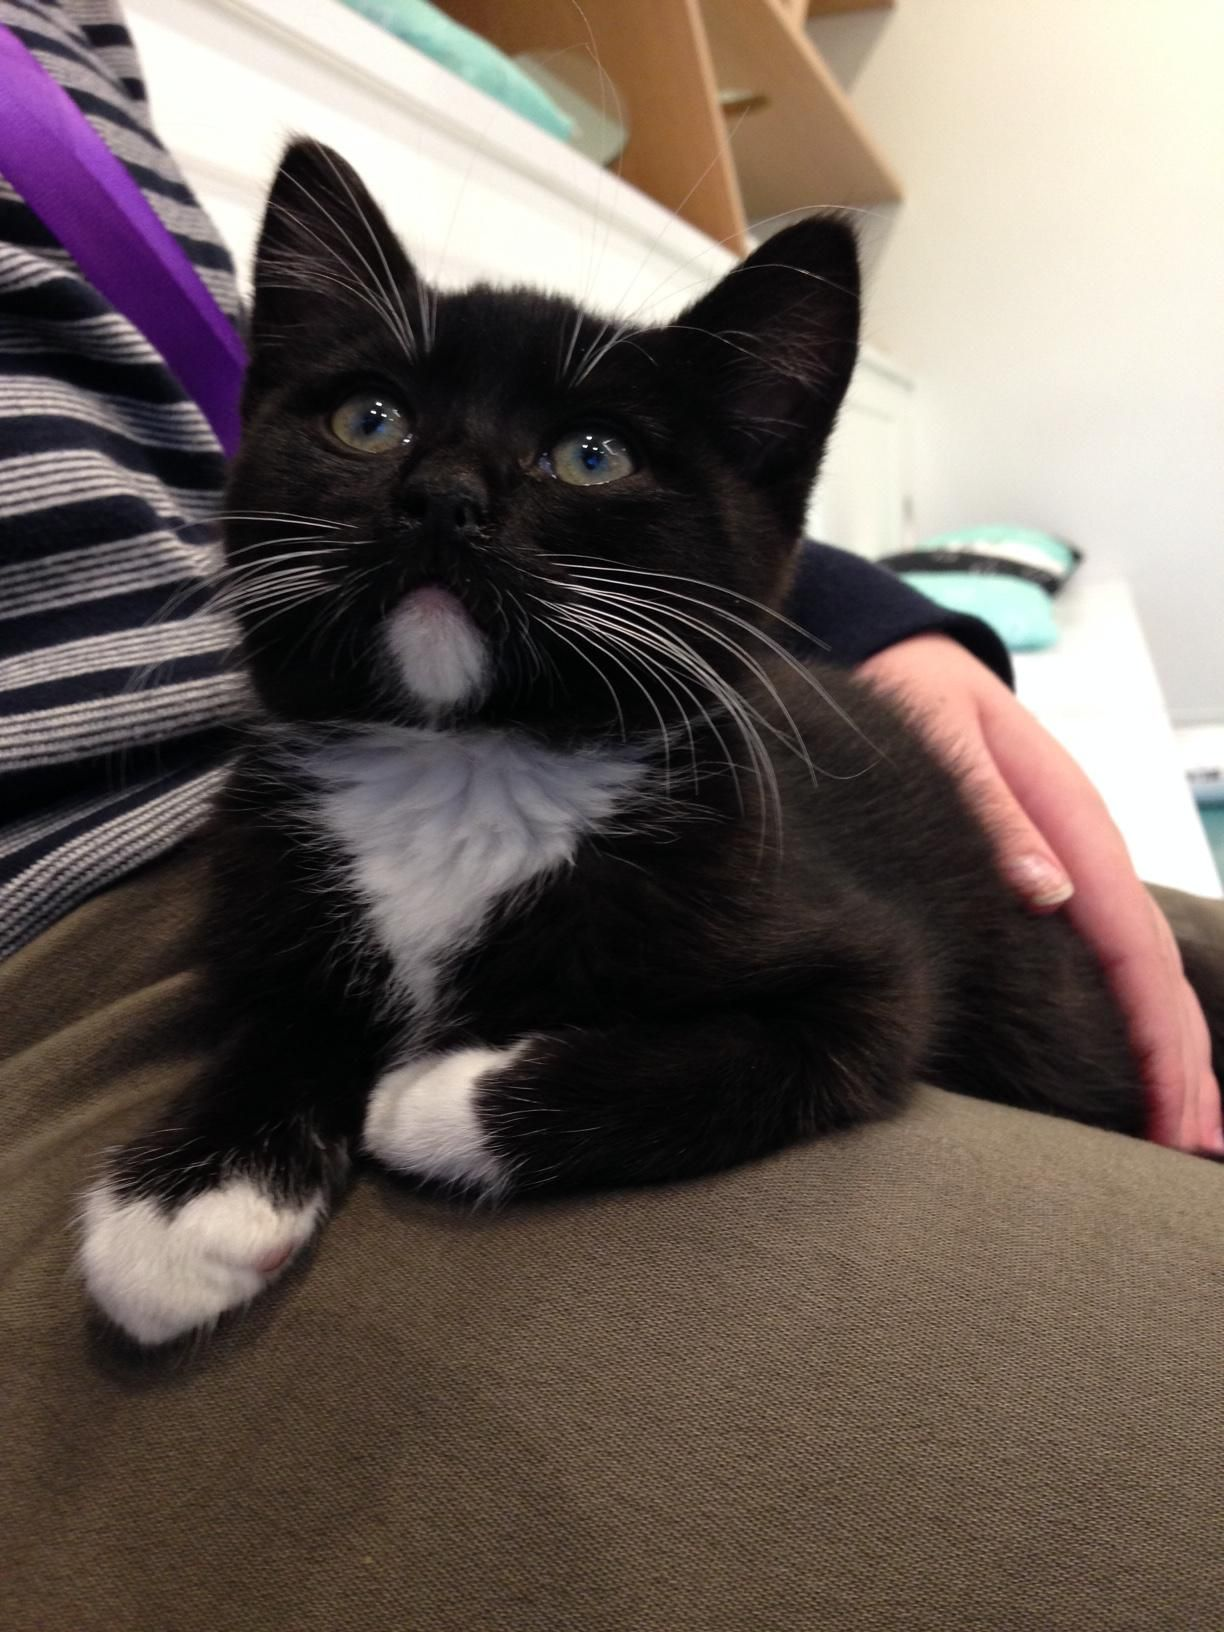 I Went To A Cat Cafe Today I Met This Little Cutie He Walked Right Into My Lap And Started Purring Cats Purring Cat Crazy Cats Gorgeous Cats